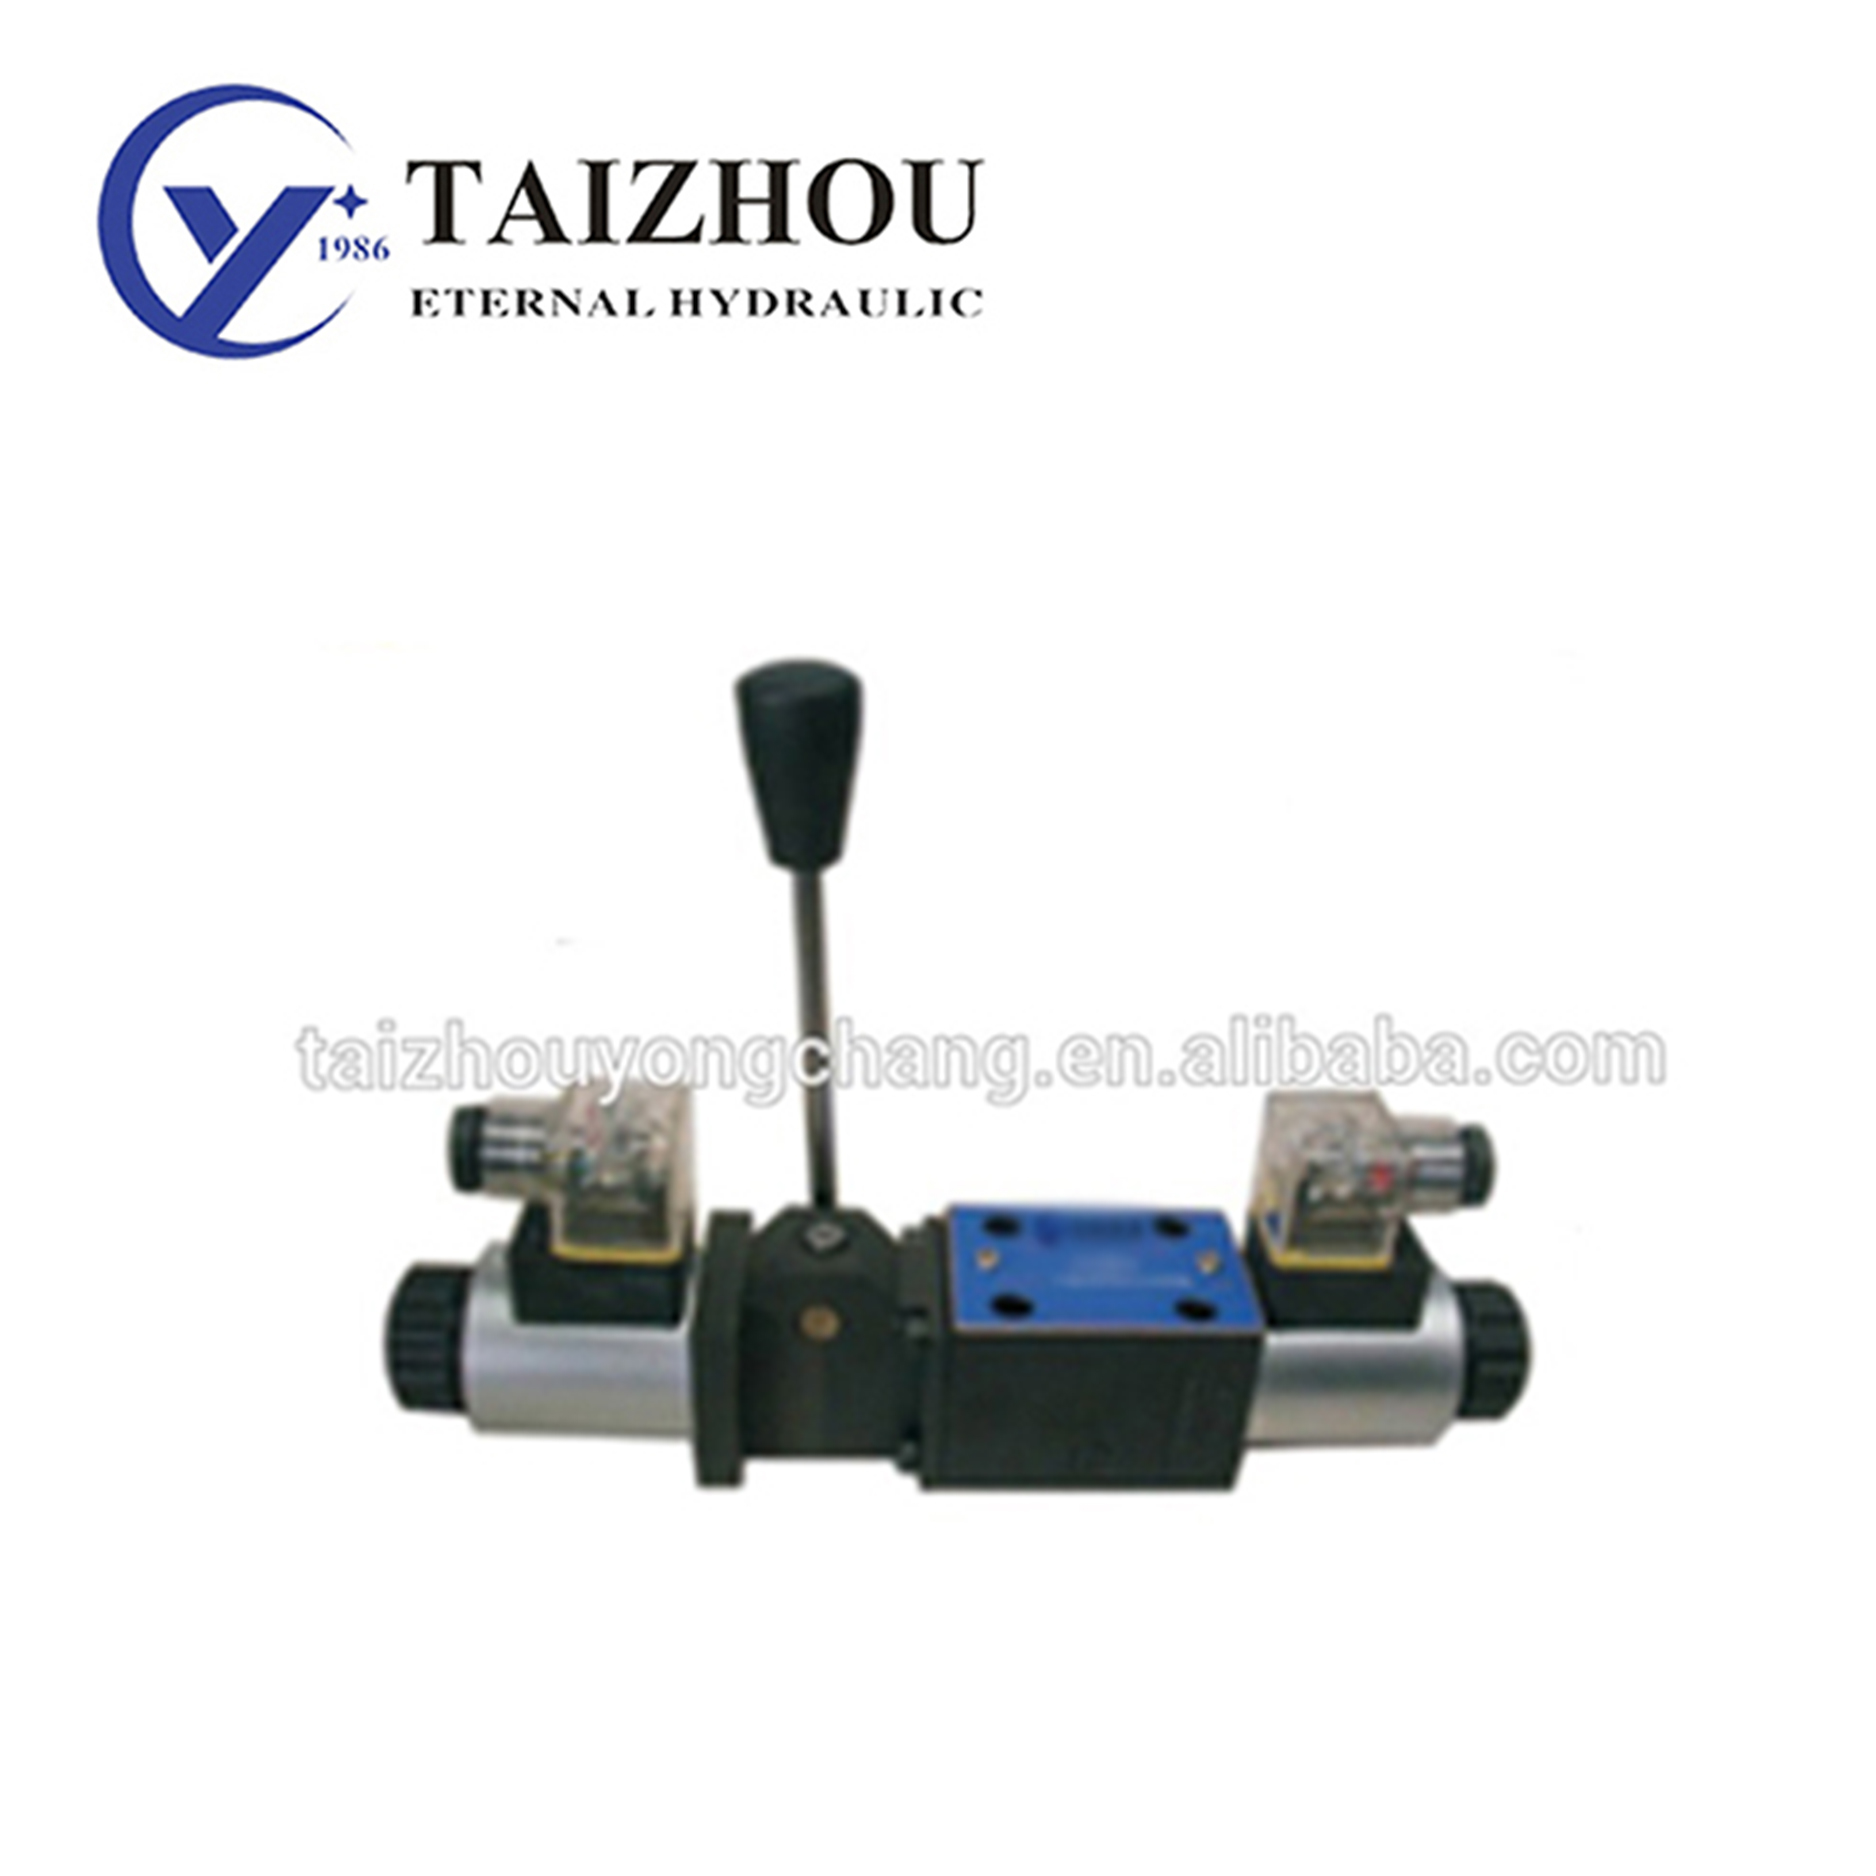 YJ4WE6 Series Solenoid Directional Control Valve